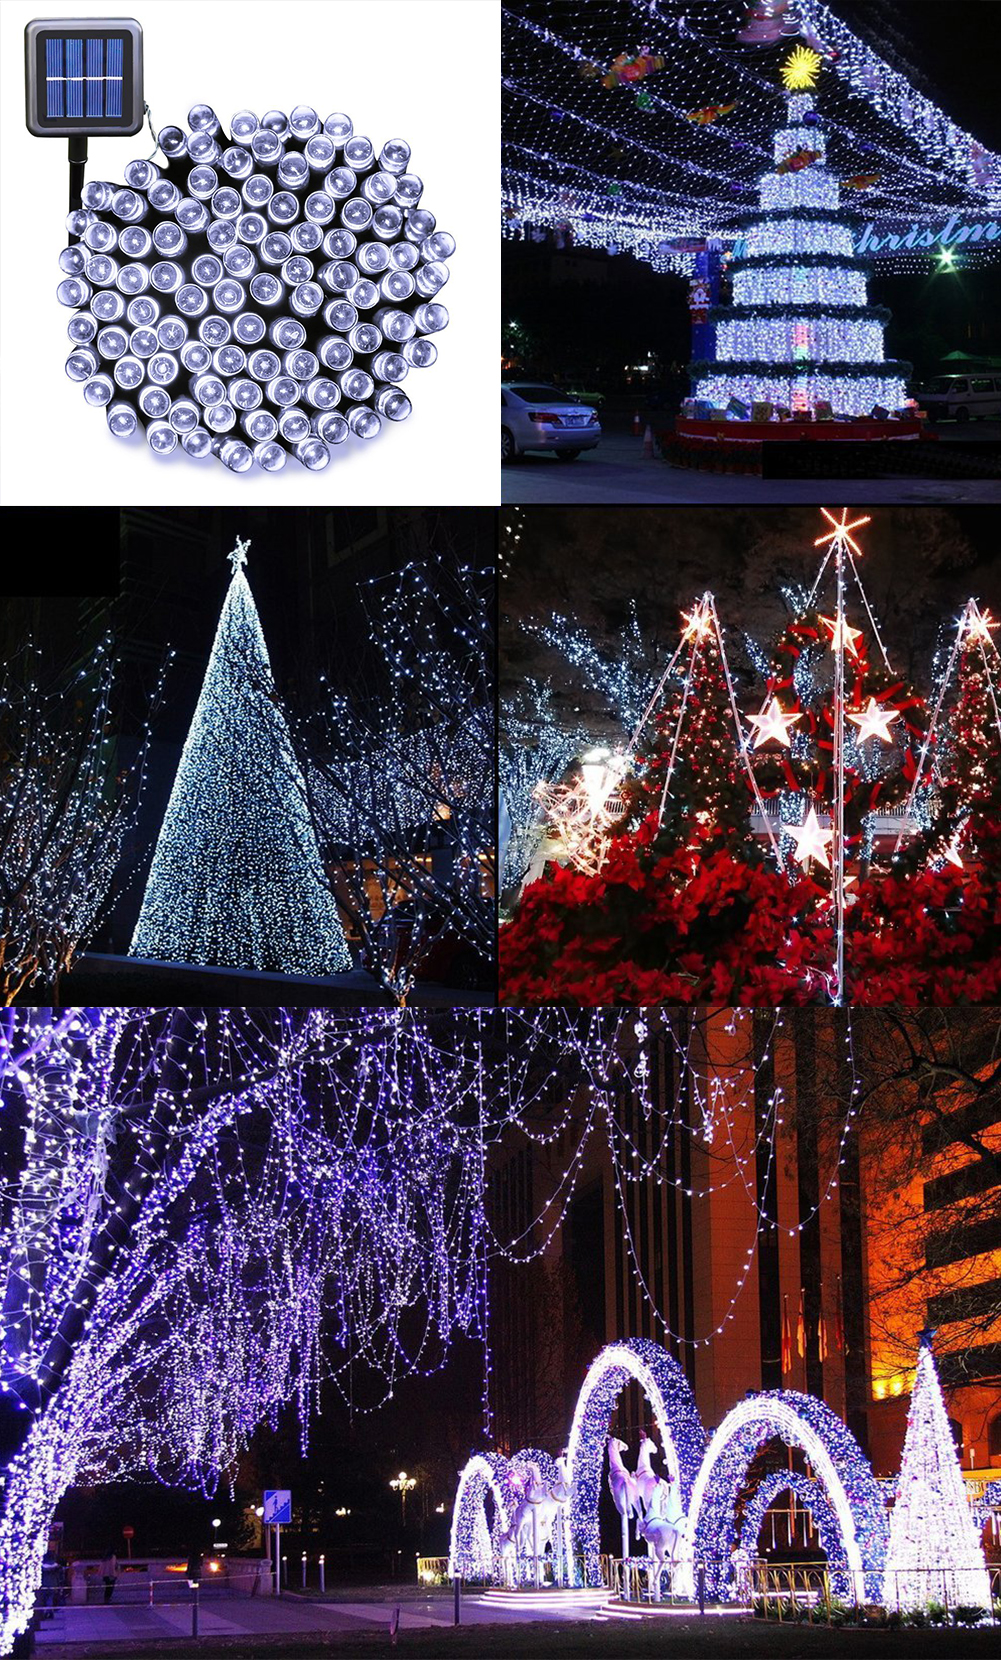 Solar Christmas Decorations - Solar string lights